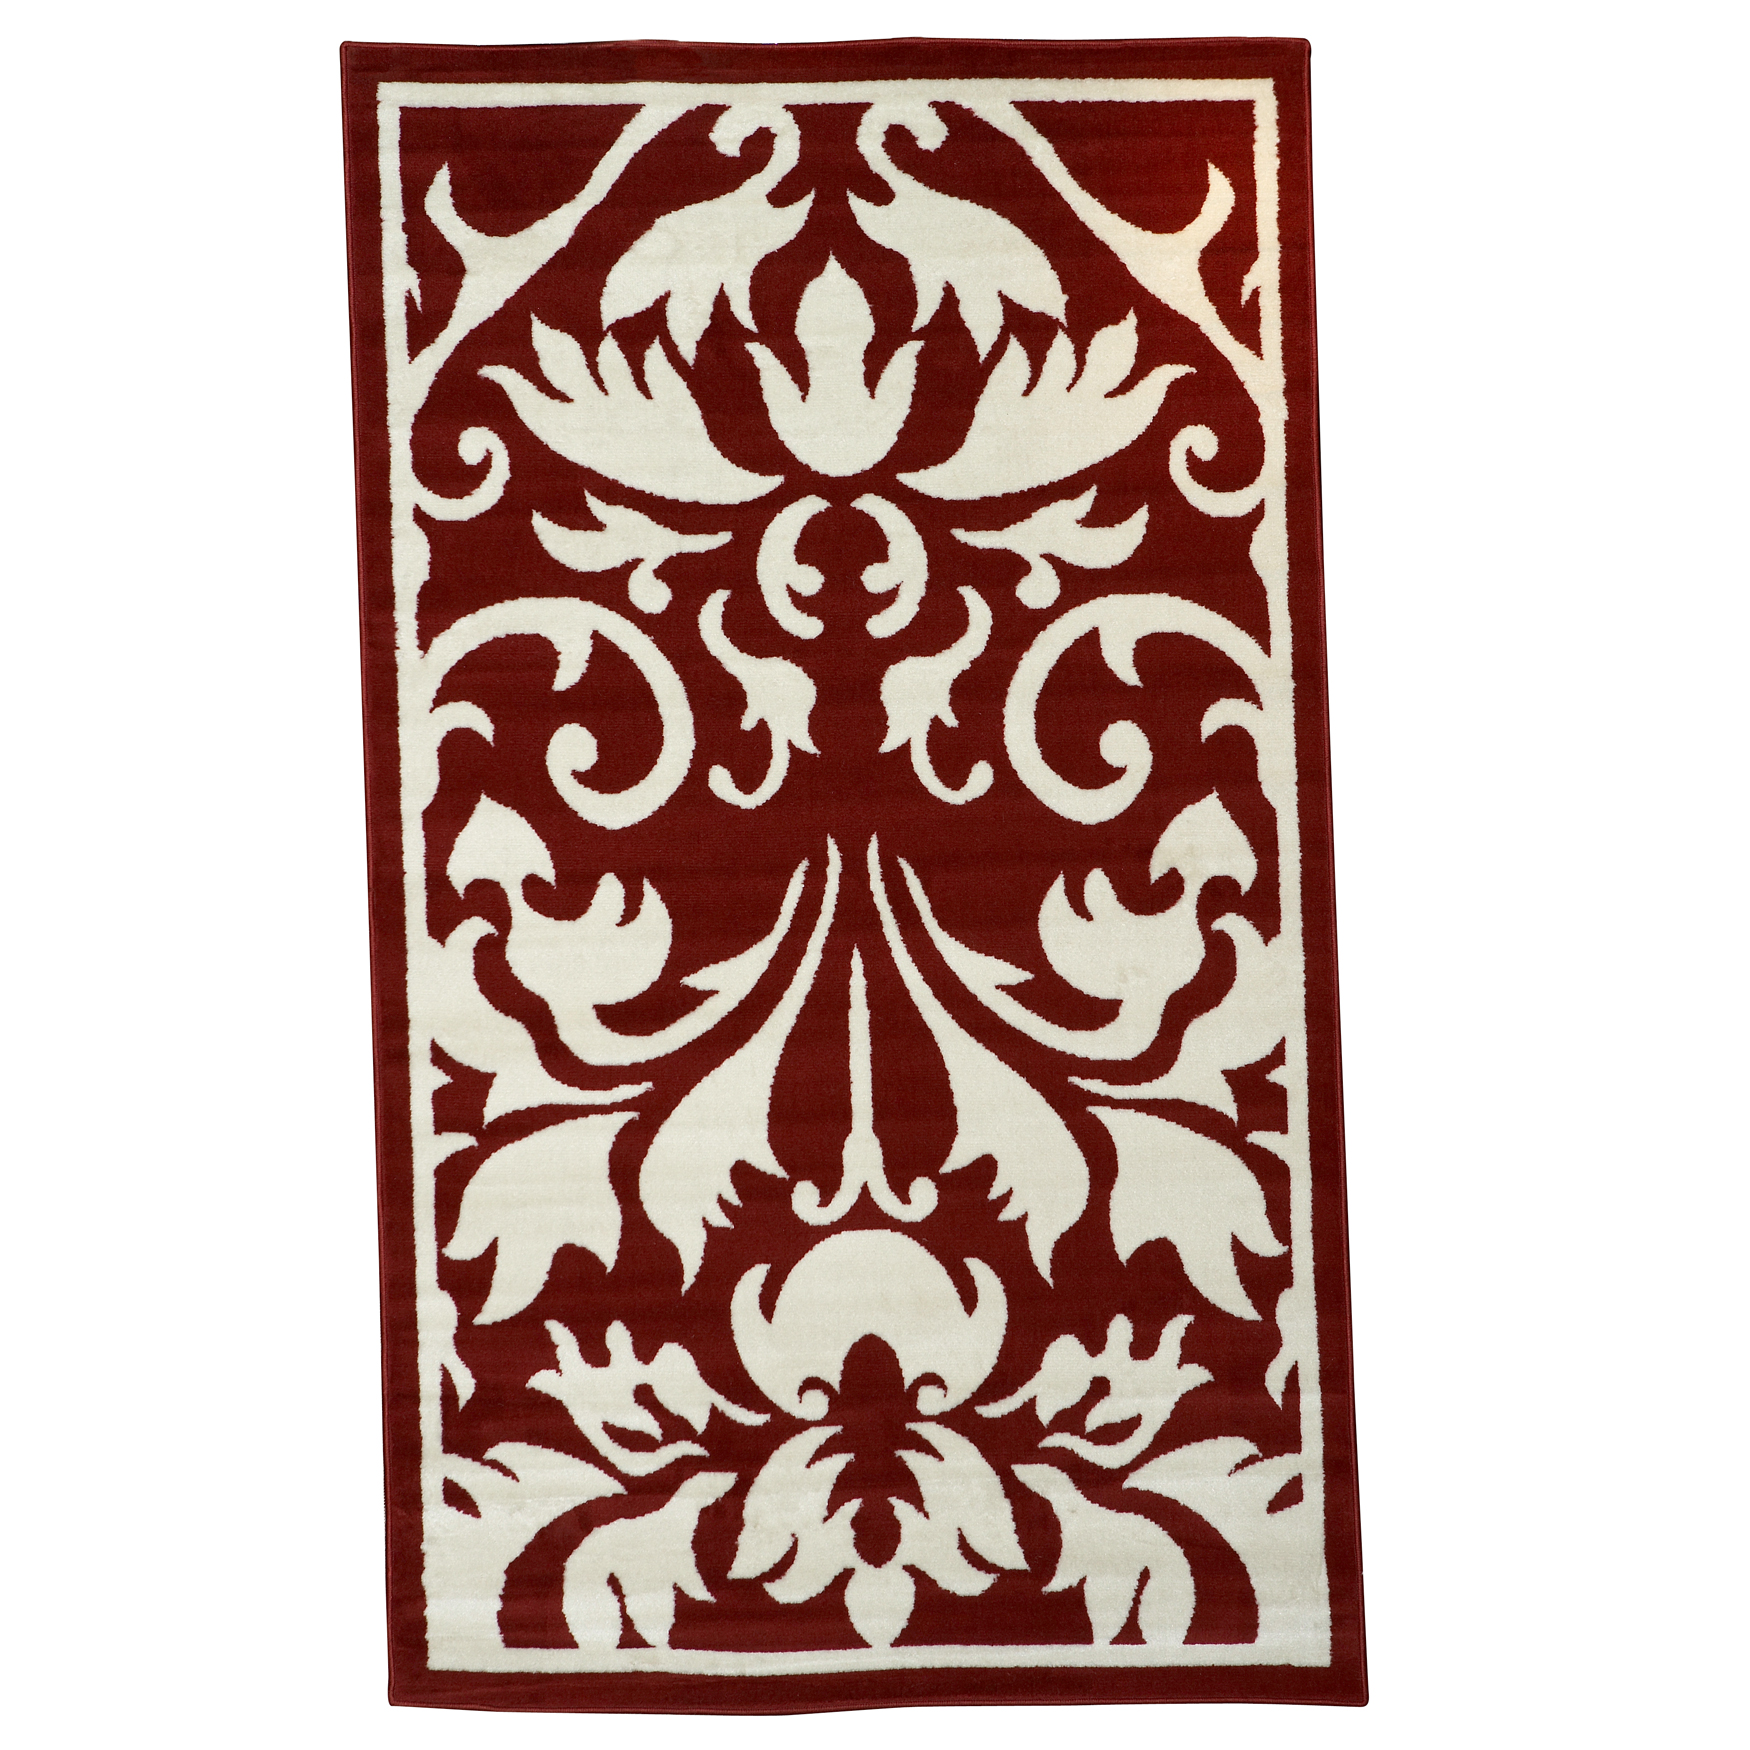 Capri Red 5' x 7' Area Rug, RED